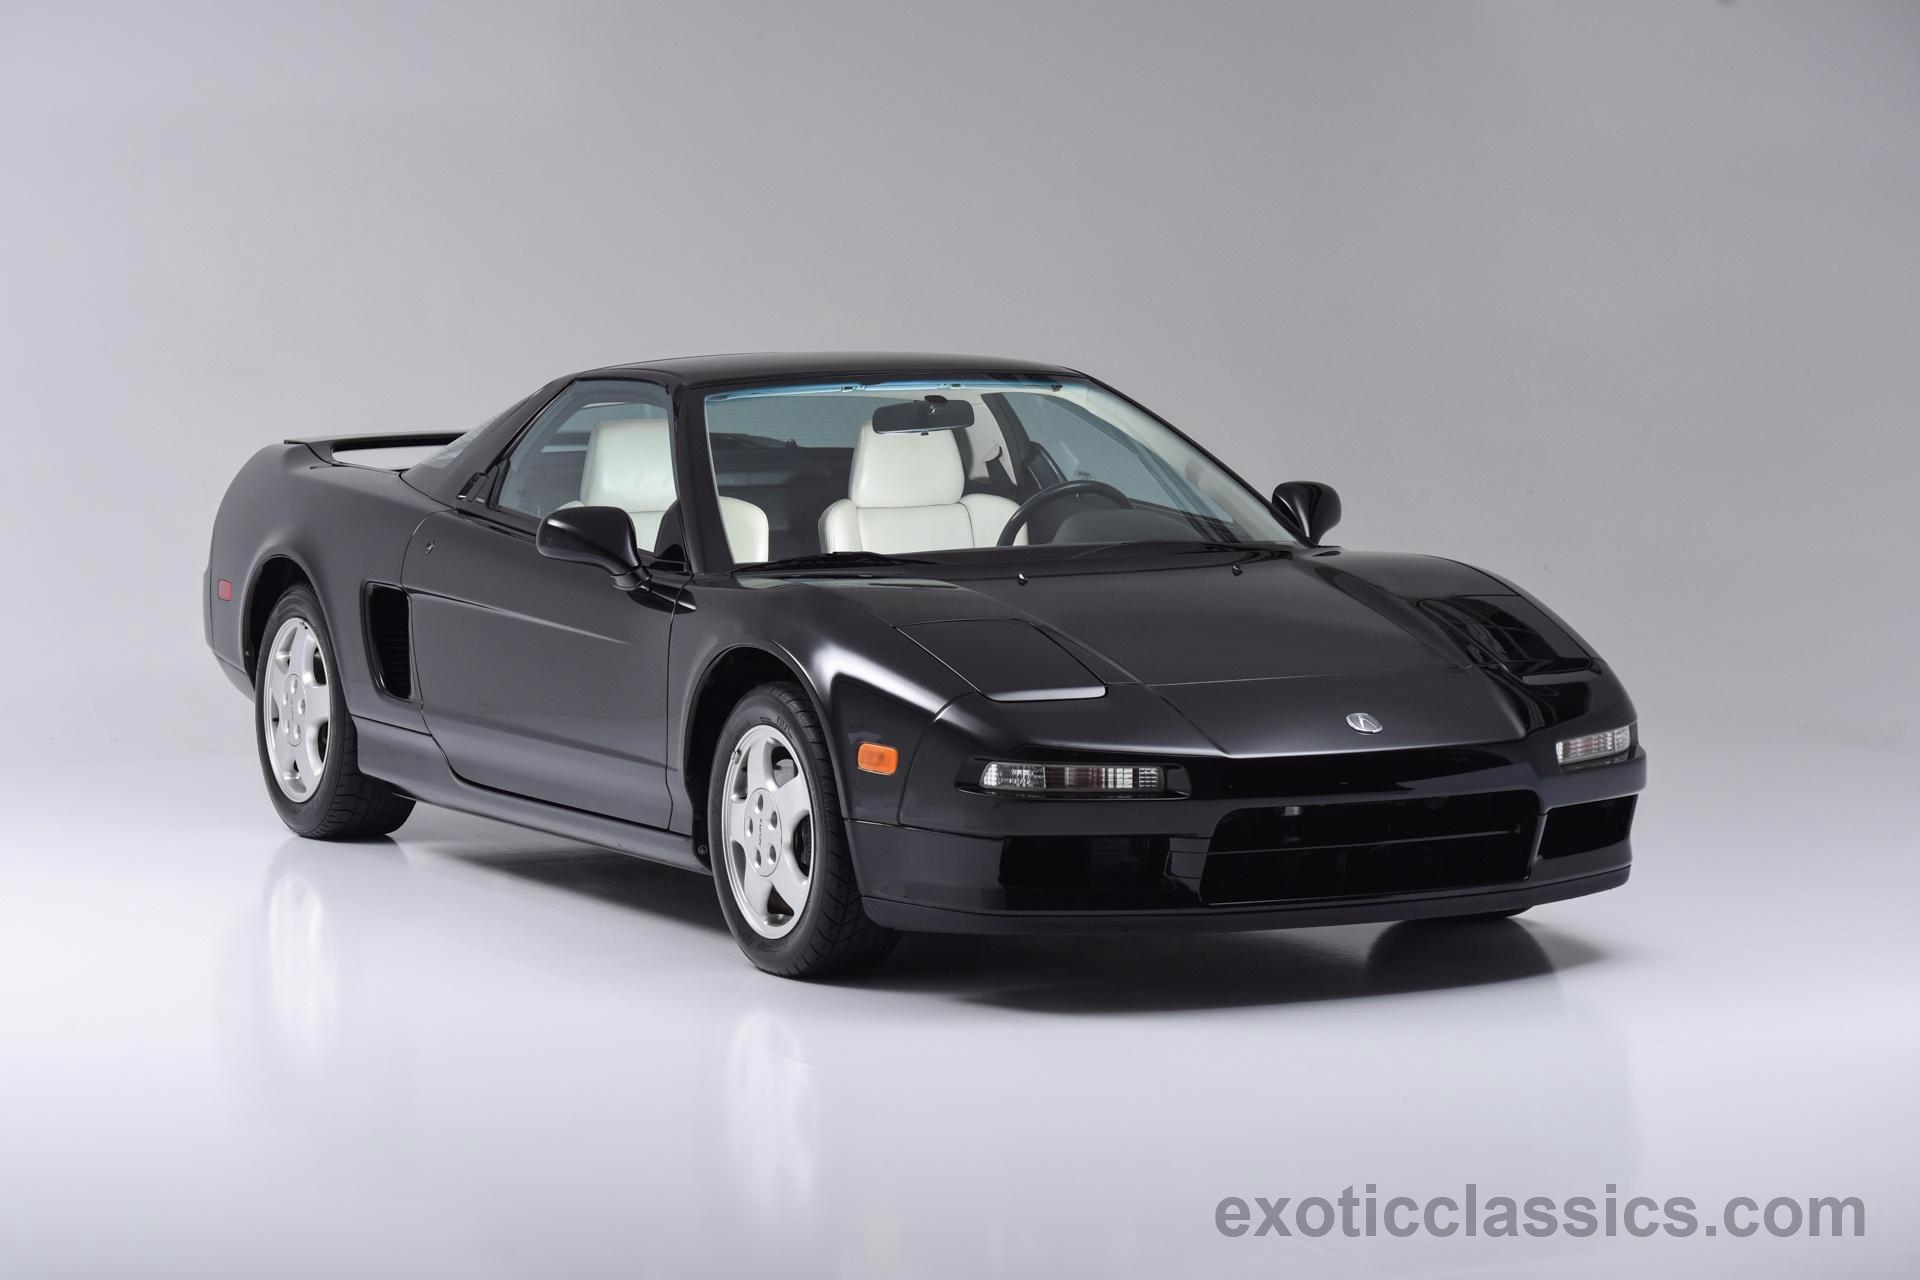 Acura Exotic Car >> 1991 Acura Nsx Exotic Classic Car Dealership New York L Champion